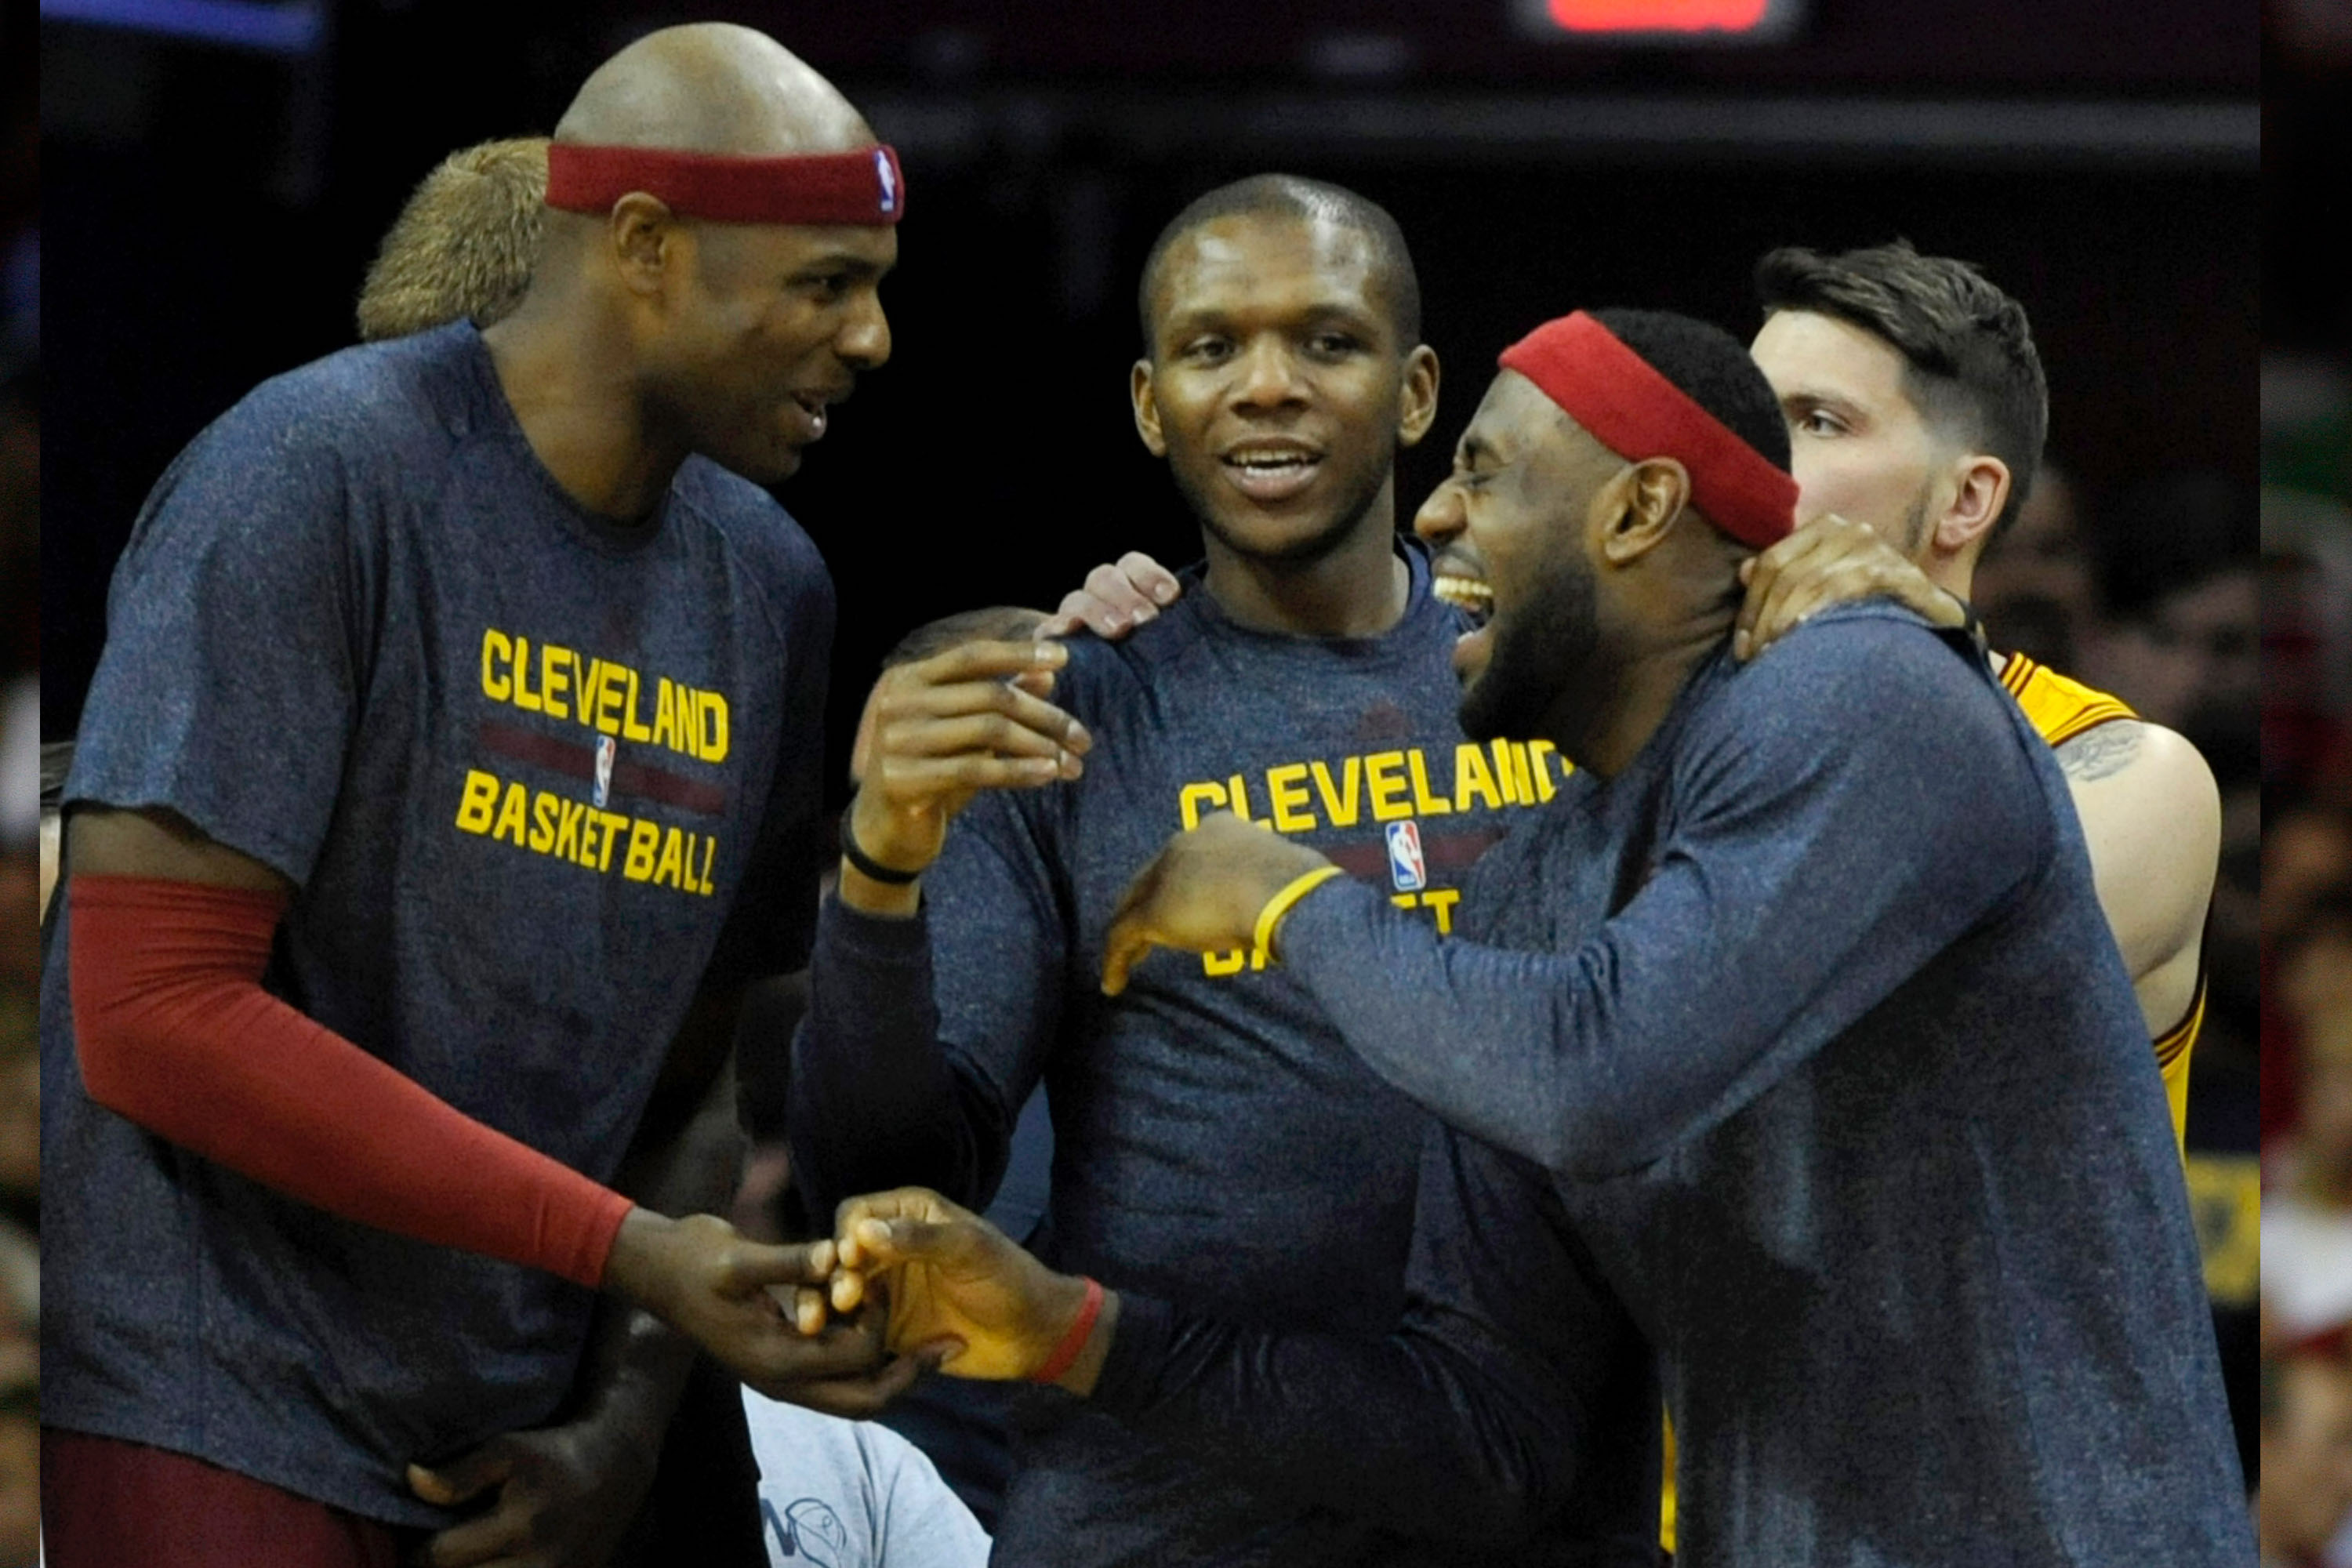 Nov 26, 2014; Cleveland, OH, USA; Cleveland Cavaliers forward LeBron James (23) jokes with center Brendan Haywood (33) and forward James Jones (1) during the fourth quarter against the Washington Wizards at Quicken Loans Arena. The Cavaliers beat the Wizards 113-87. Mandatory Credit: